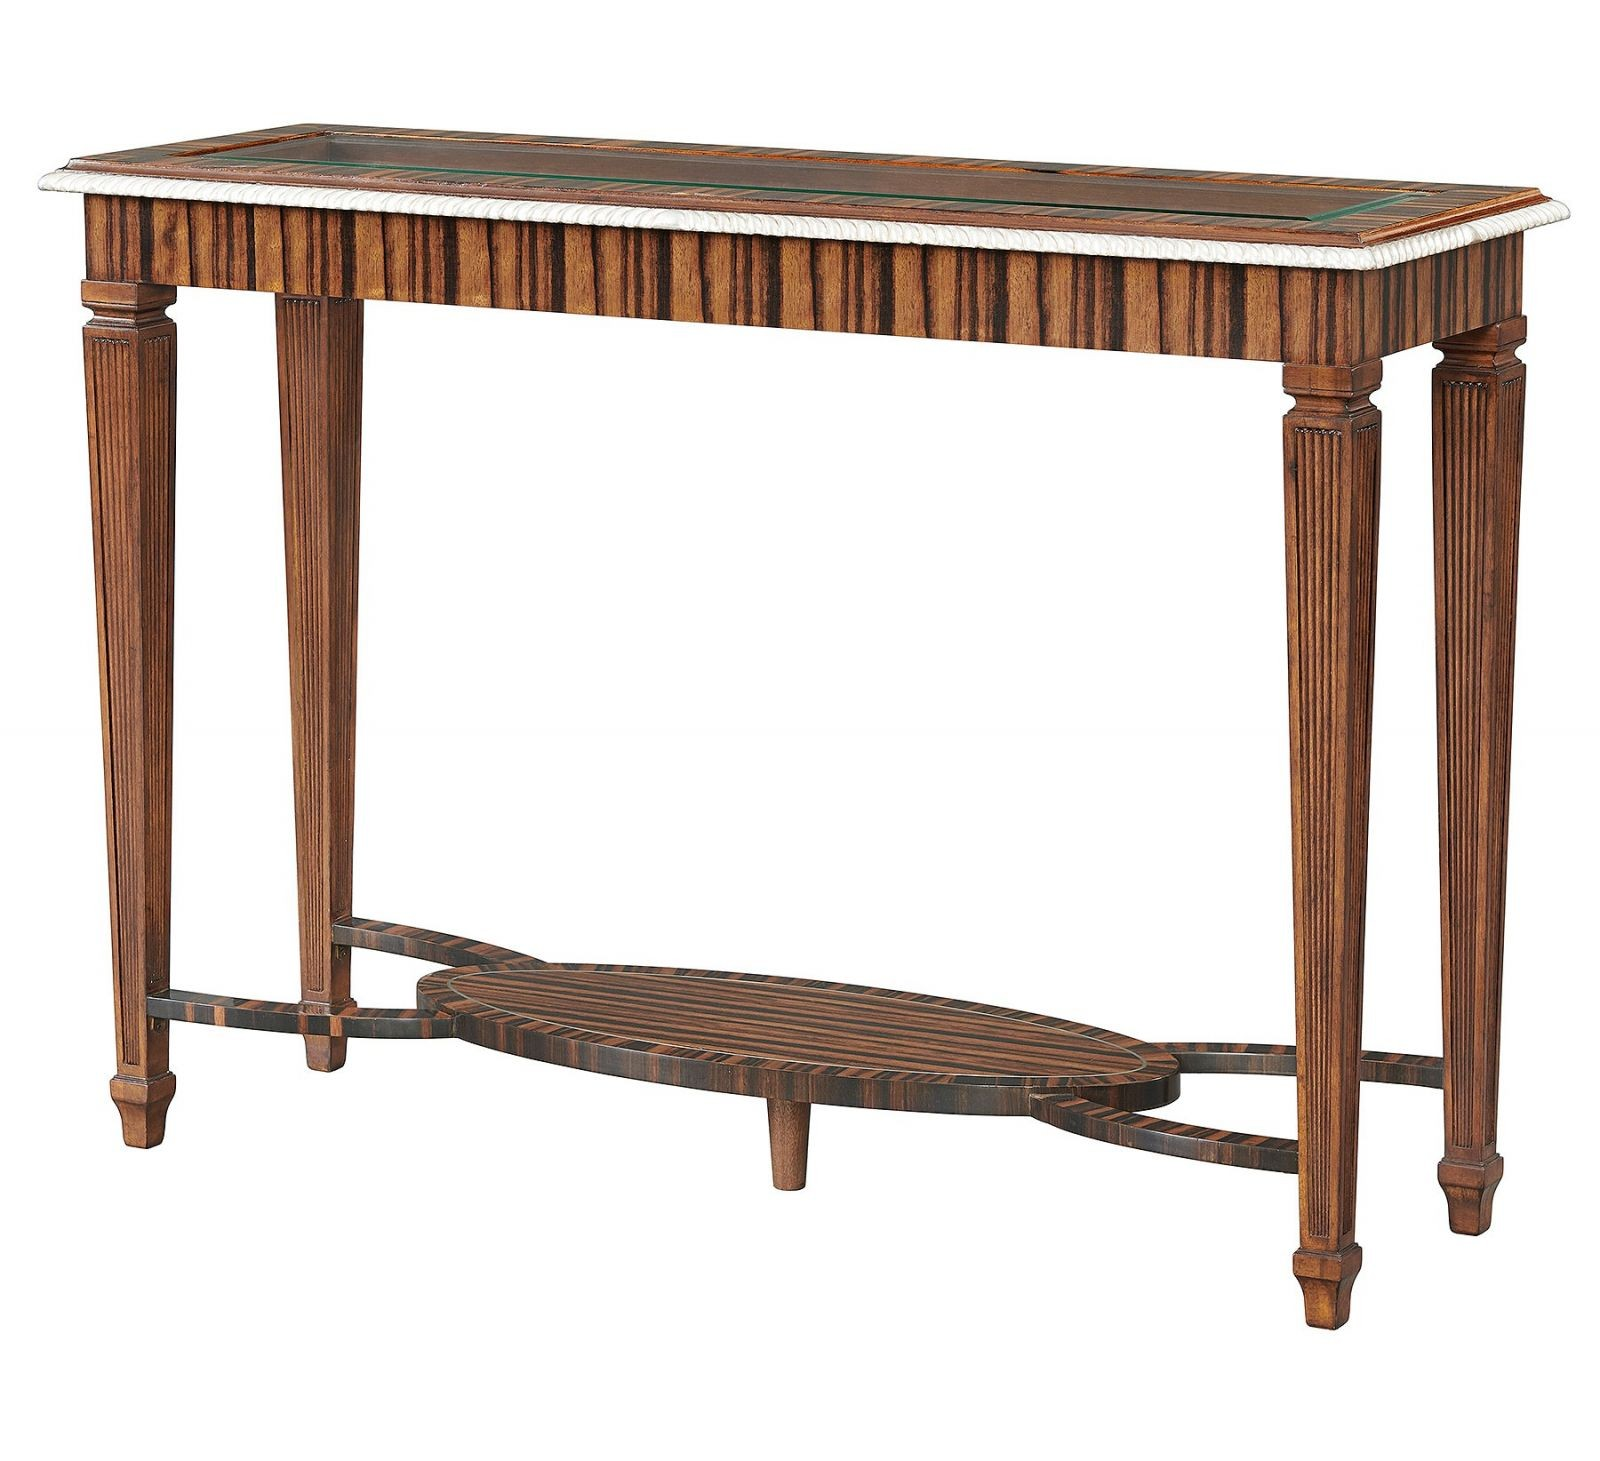 Ebony console table with glass top